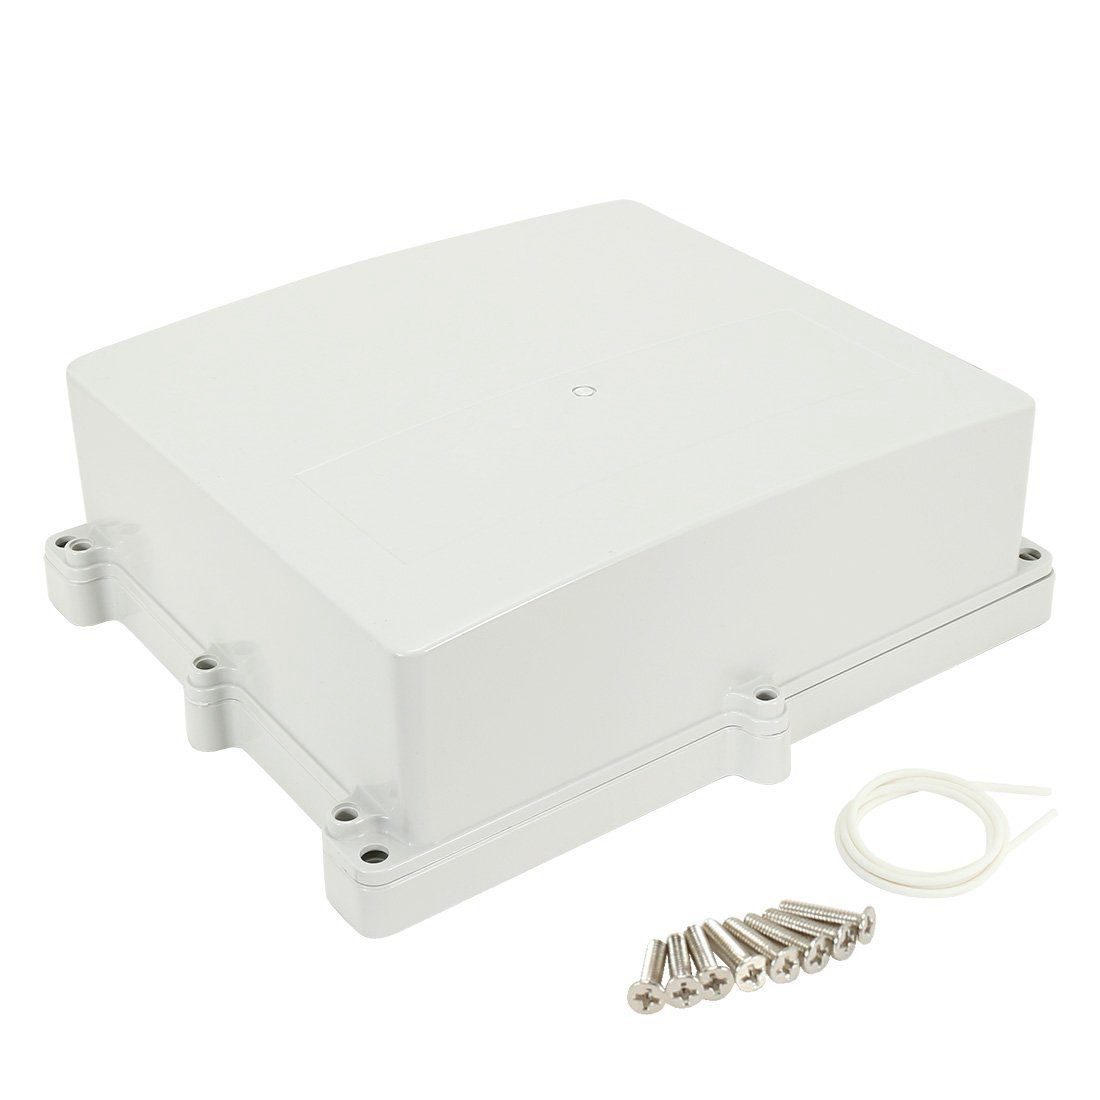 11.8x10.6x4.4 inch(300x270x112mm) ABS Junction Box Universal Electric Project Enclosure Dropshipping11.8x10.6x4.4 inch(300x270x112mm) ABS Junction Box Universal Electric Project Enclosure Dropshipping